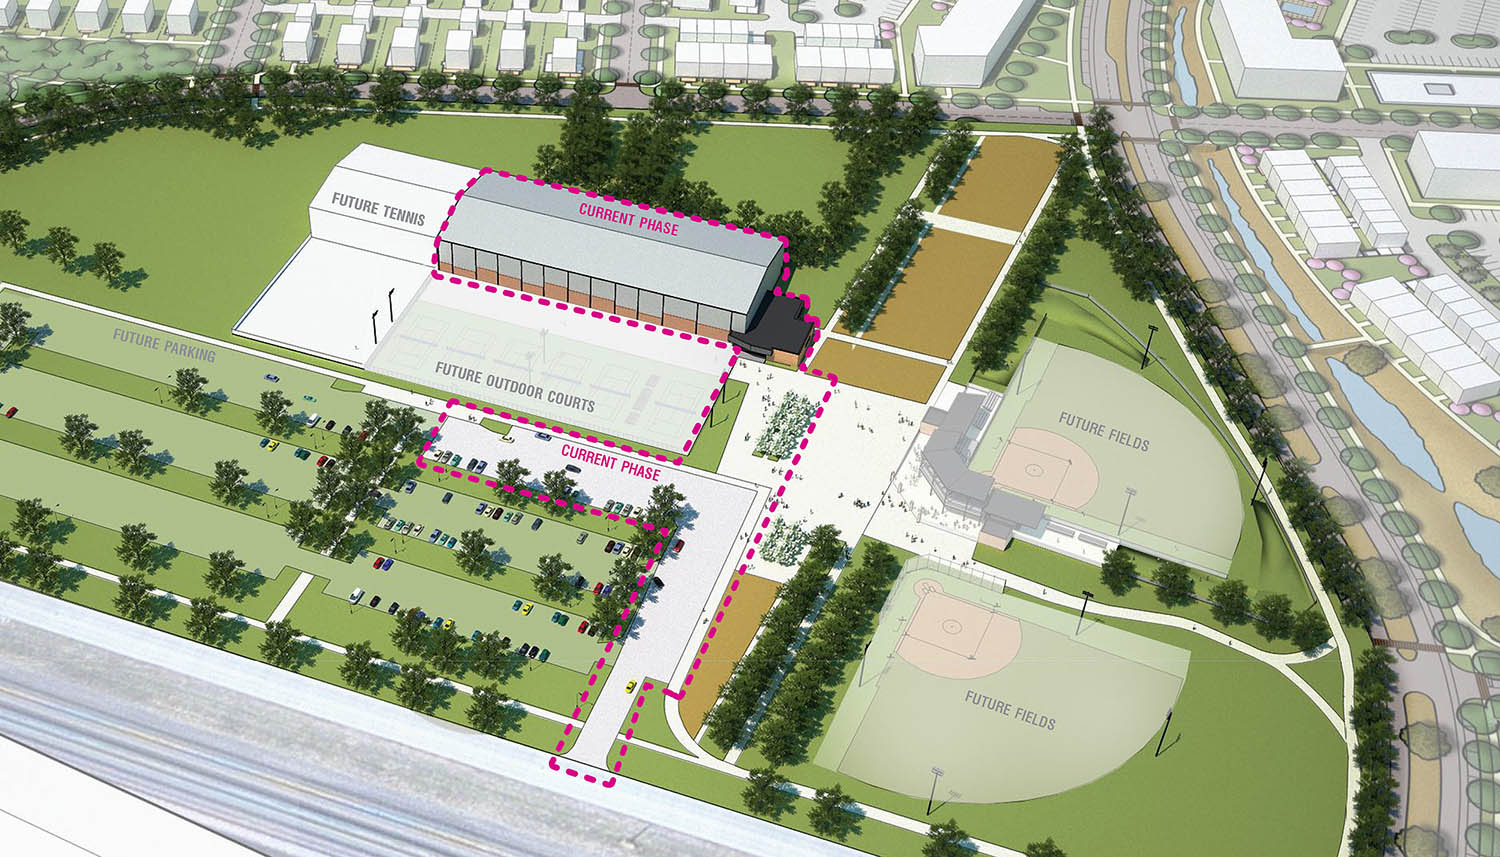 UNK and the city of Kearney are partnering on a project that adds an indoor tennis complex to UNK's University Village development. The city will construct, own and operate the six-court tennis complex, with UNK providing operational and maintenance support. (Courtesy The Clark Enersen Partners)